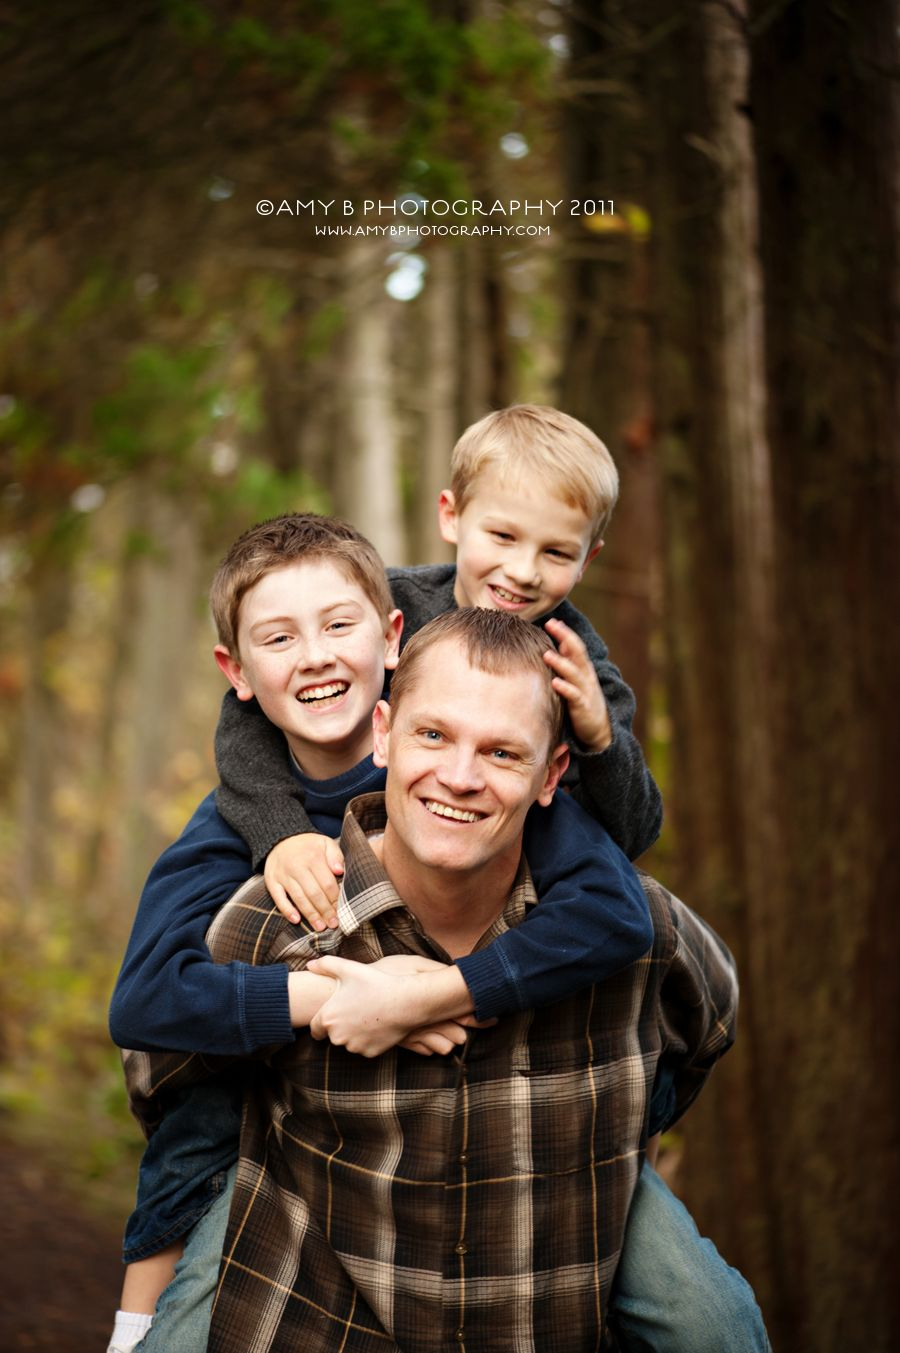 Father And Sons Amy B Photography 2011 - Puyallup Family -4535